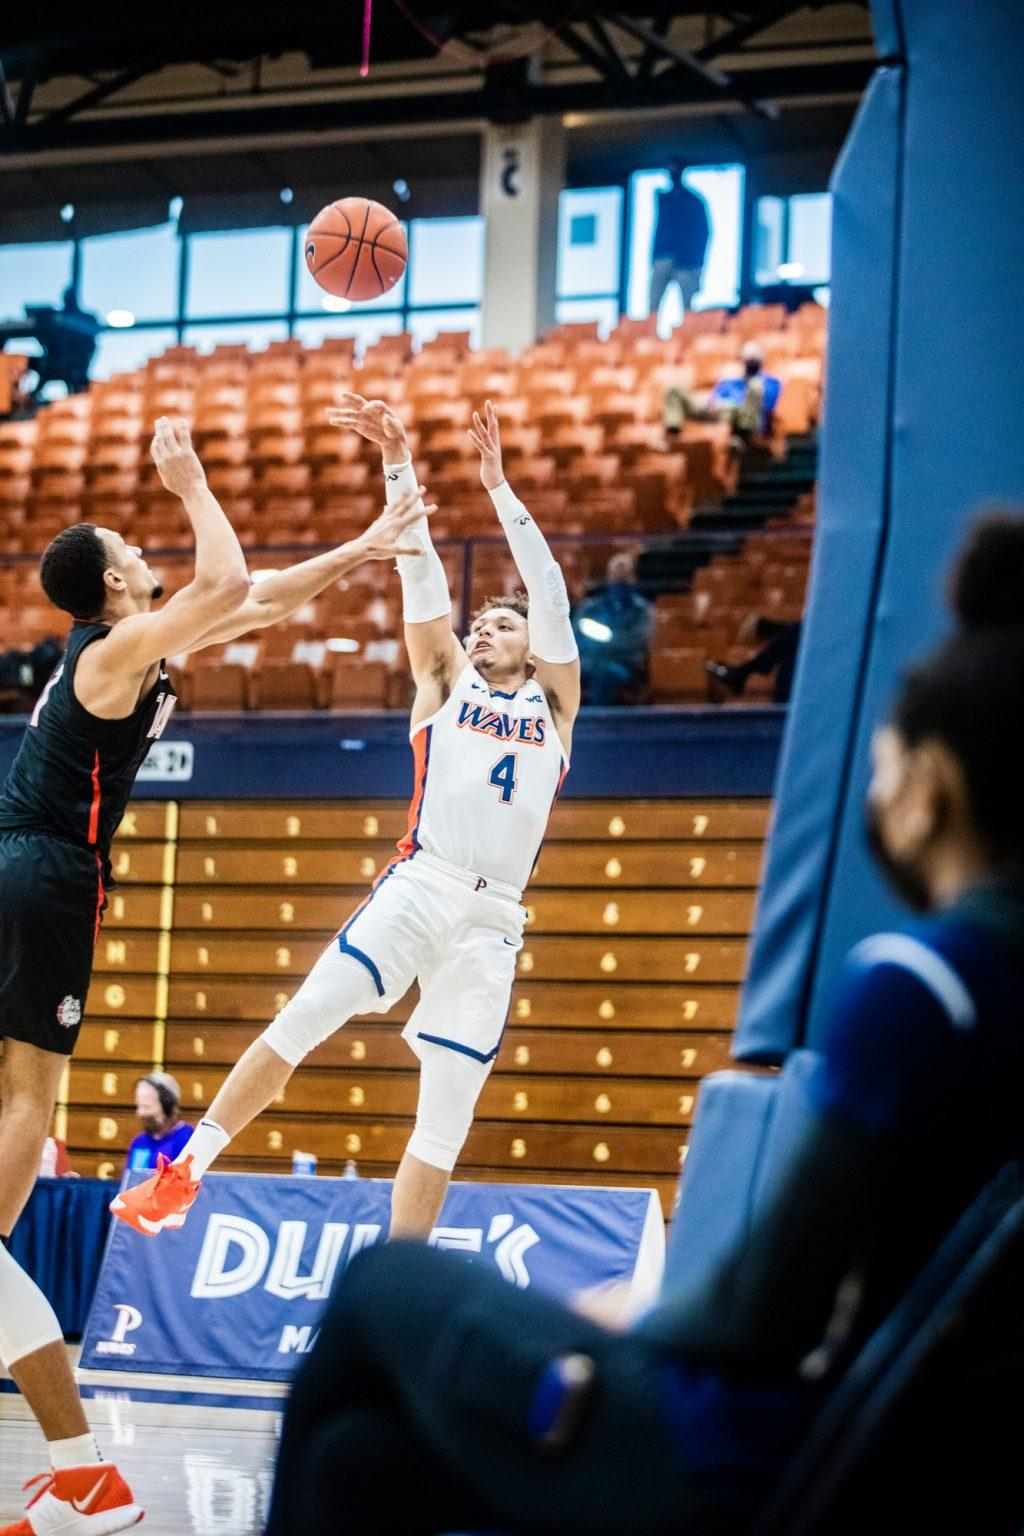 Pepperdine senior point guard Colbey Ross attempts a fadeway jump shot over Gonzaga's Jalen Suggs during the first half Saturday at Firestone Fieldhouse. Ross finished with 16 points in the game, surpassing 2,000 points in his Pepperdine career along the way.